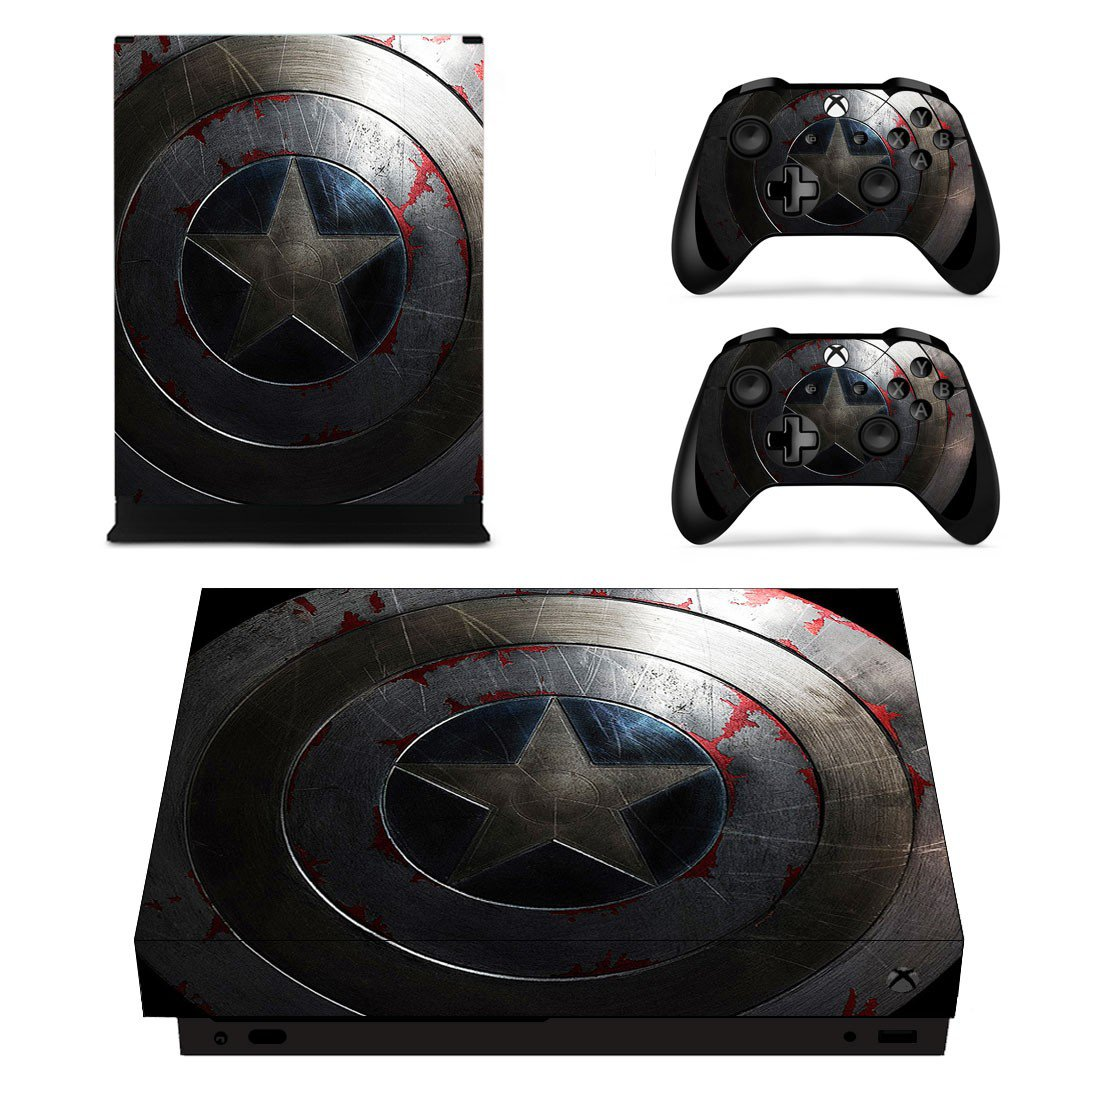 Captain America skin decal for Xbox one S console and controllers